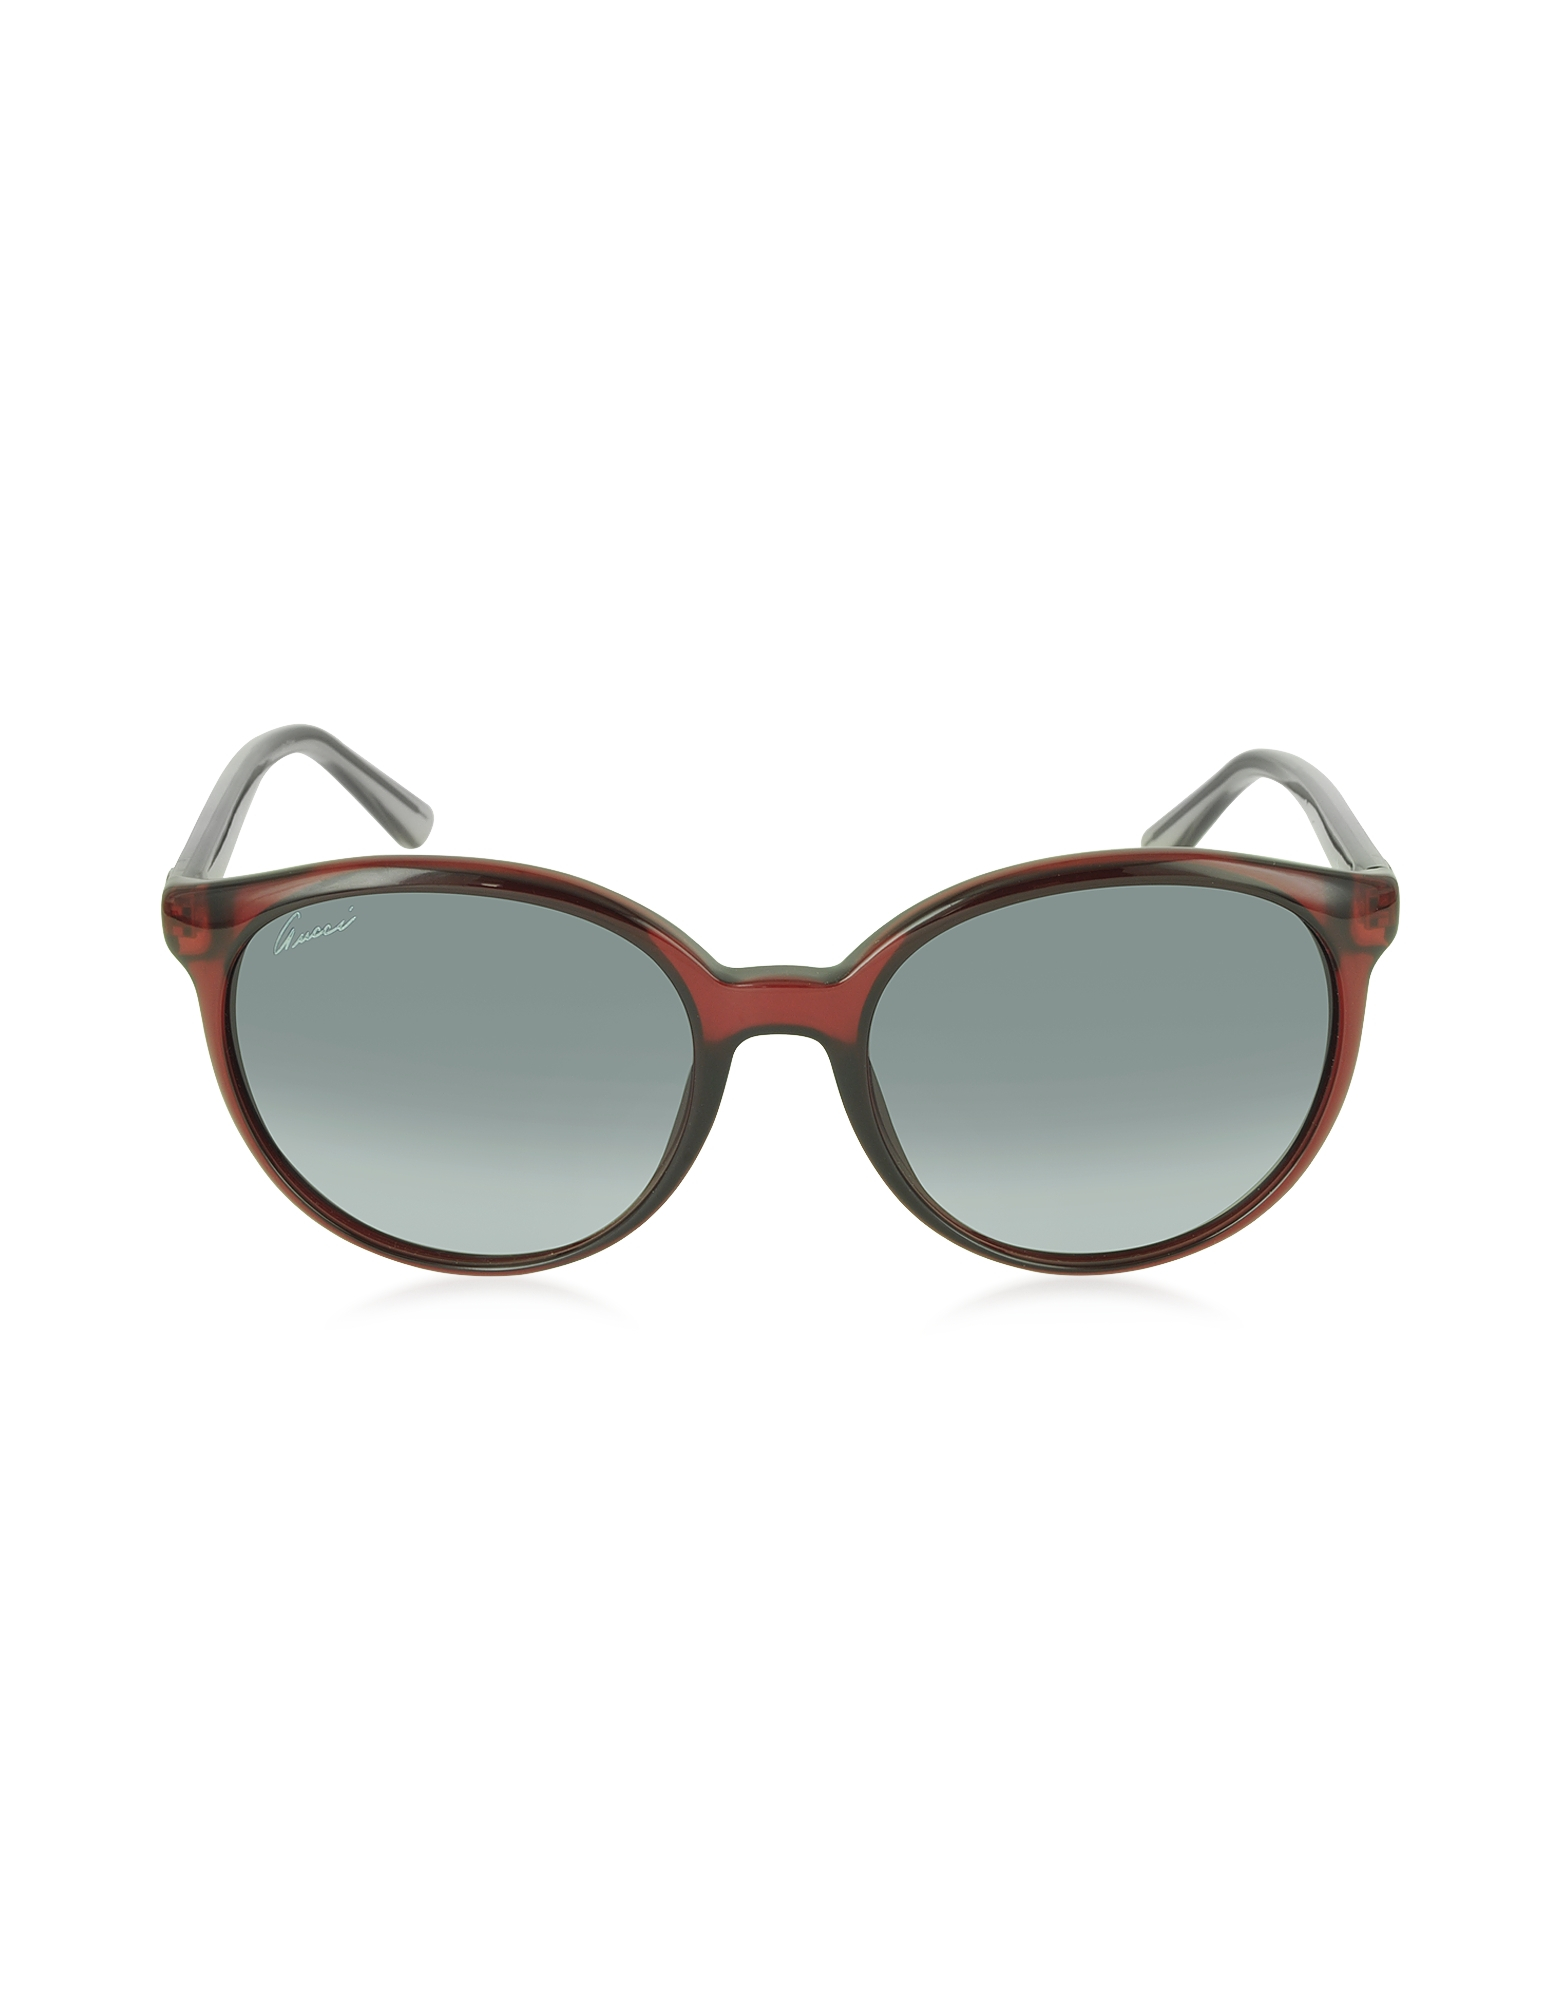 Gucci Women s Eyeglass Frames 2015 : Gucci Gg 3697/s Ipudx Round Havana Womens Sunglasses in ...